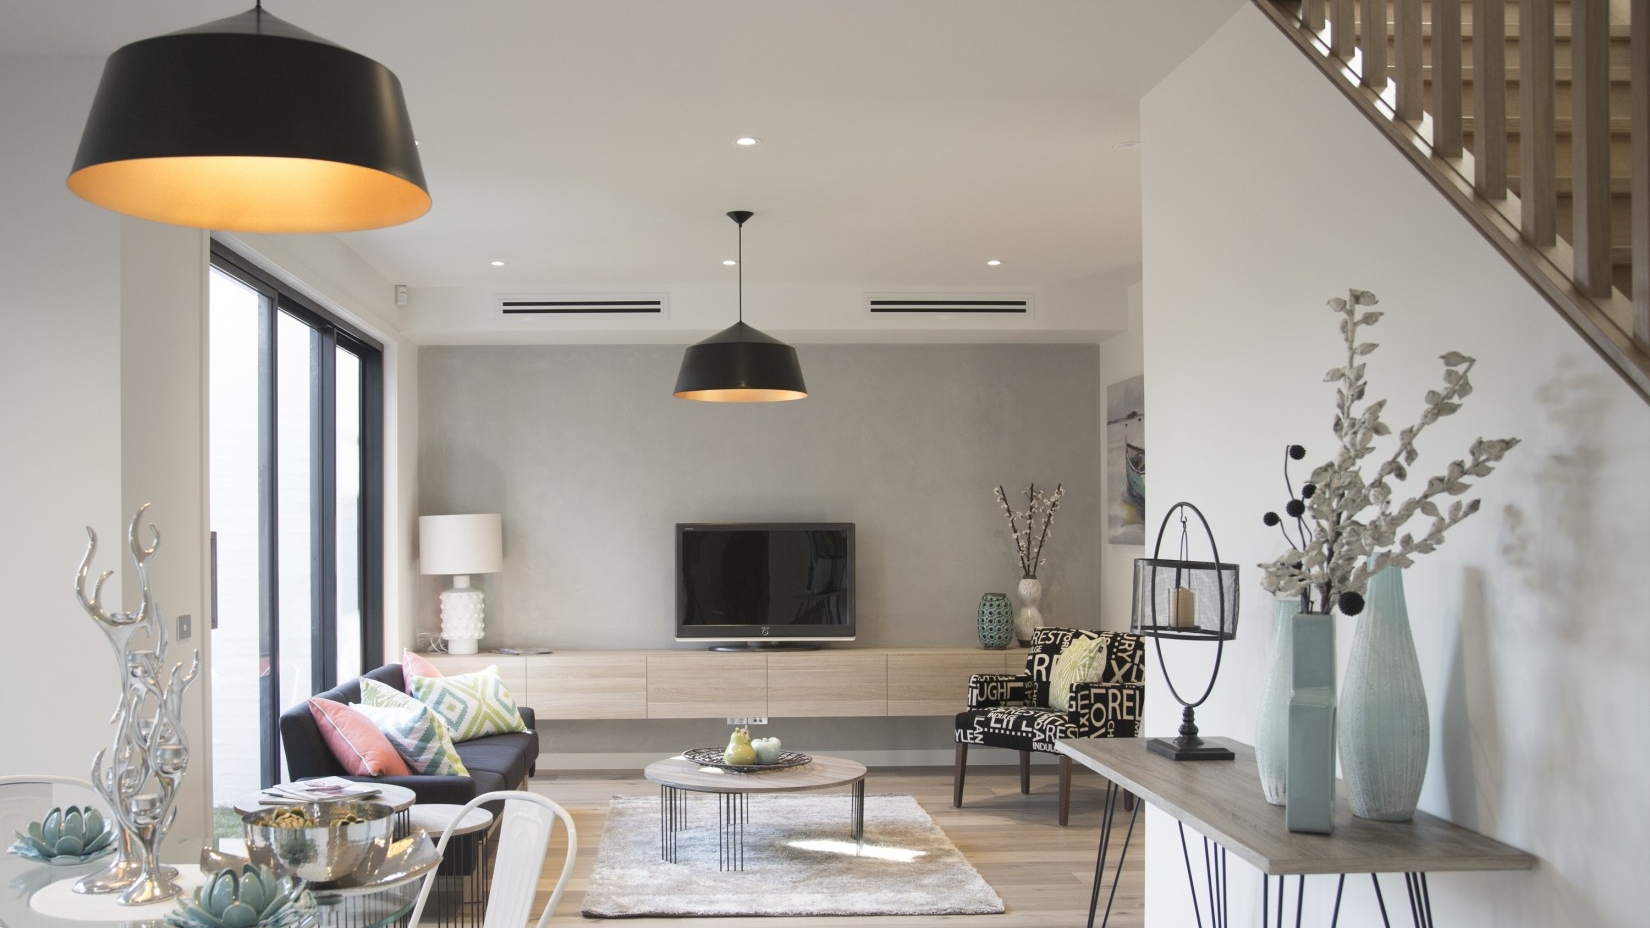 lighting-spaces-design-projects-kew-townhouses-12.jpg